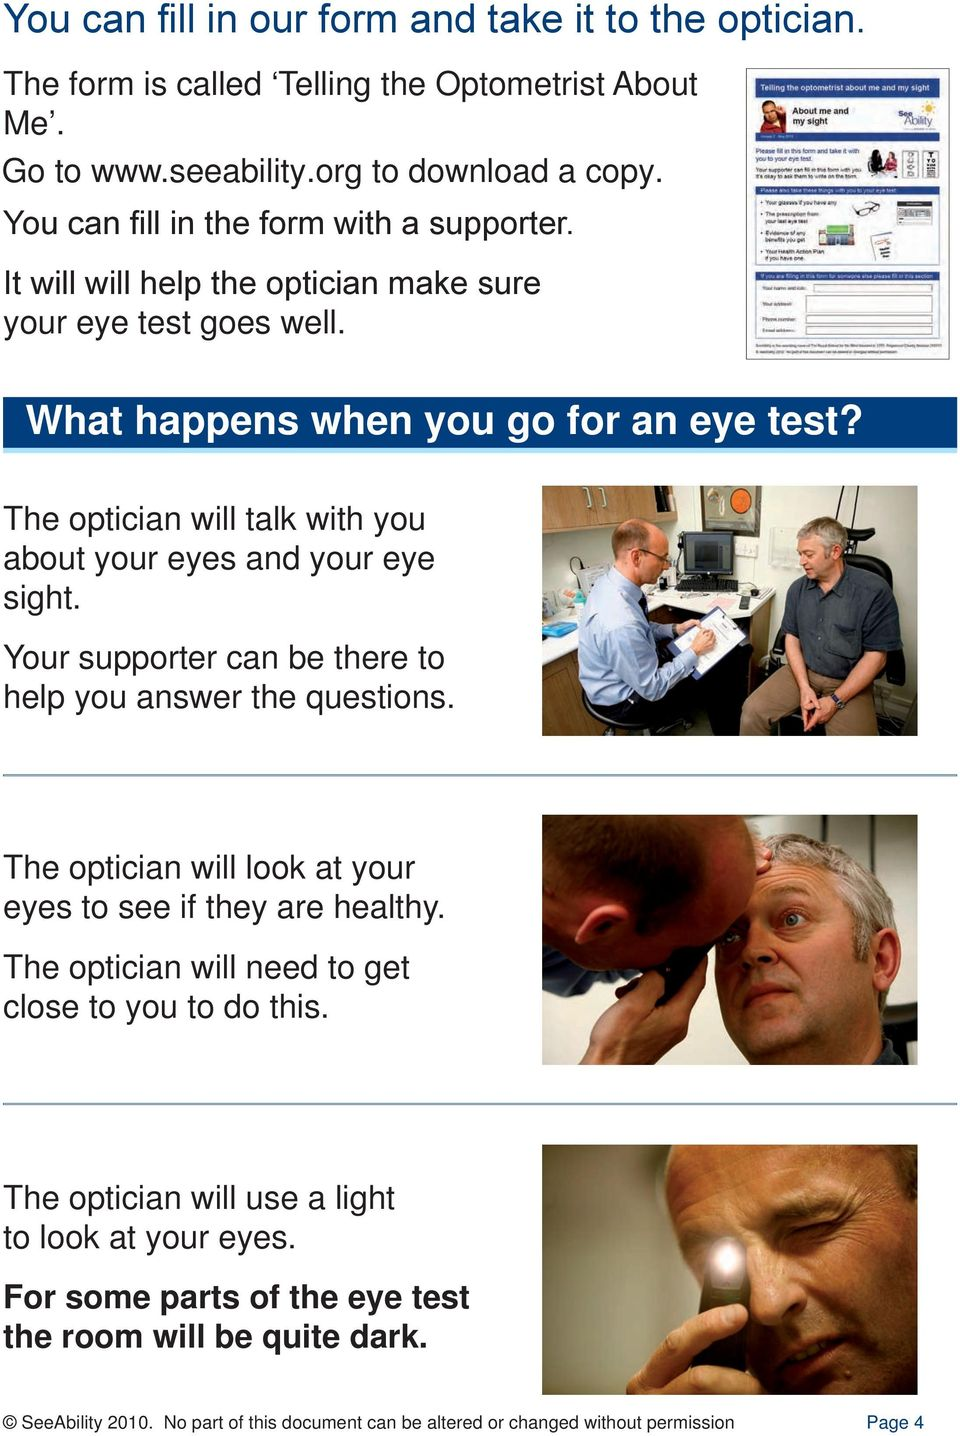 The optician will talk with you about your eyes and your eye sight. Your supporter can be there to help you answer the questions.